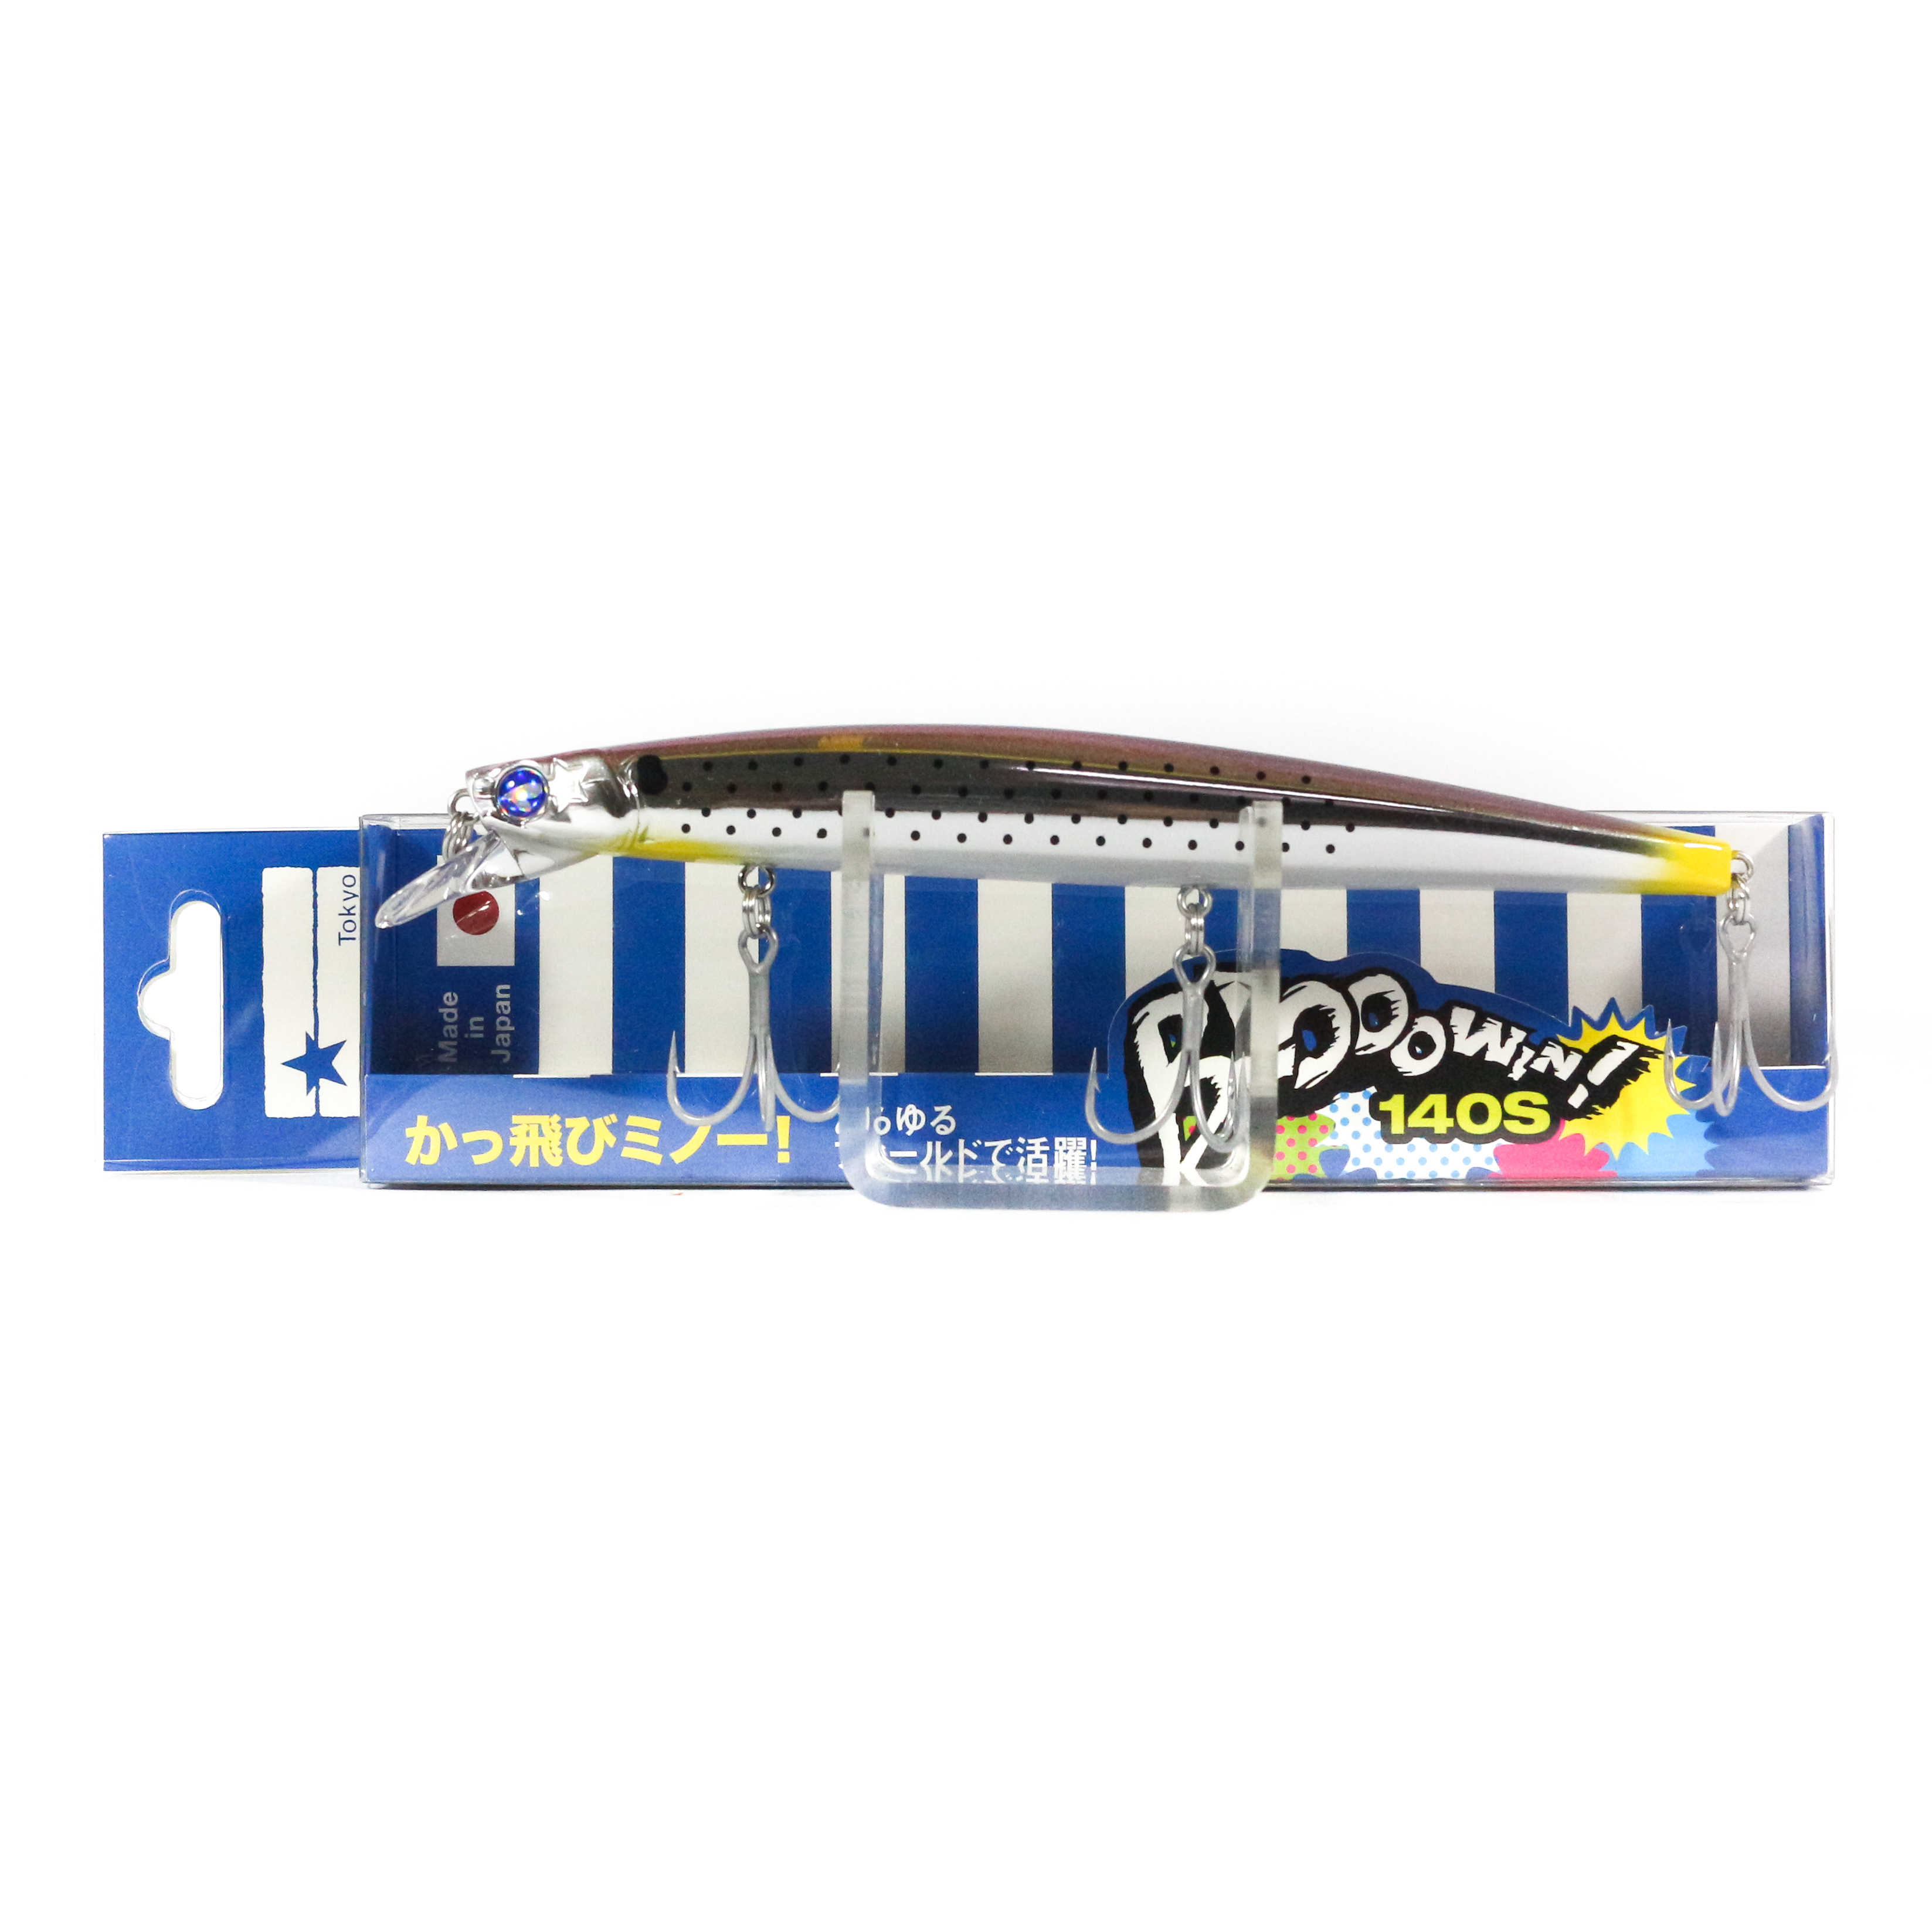 Blue Blue Blooowin 140S 23 grams Sinking Lure 07 (0894)